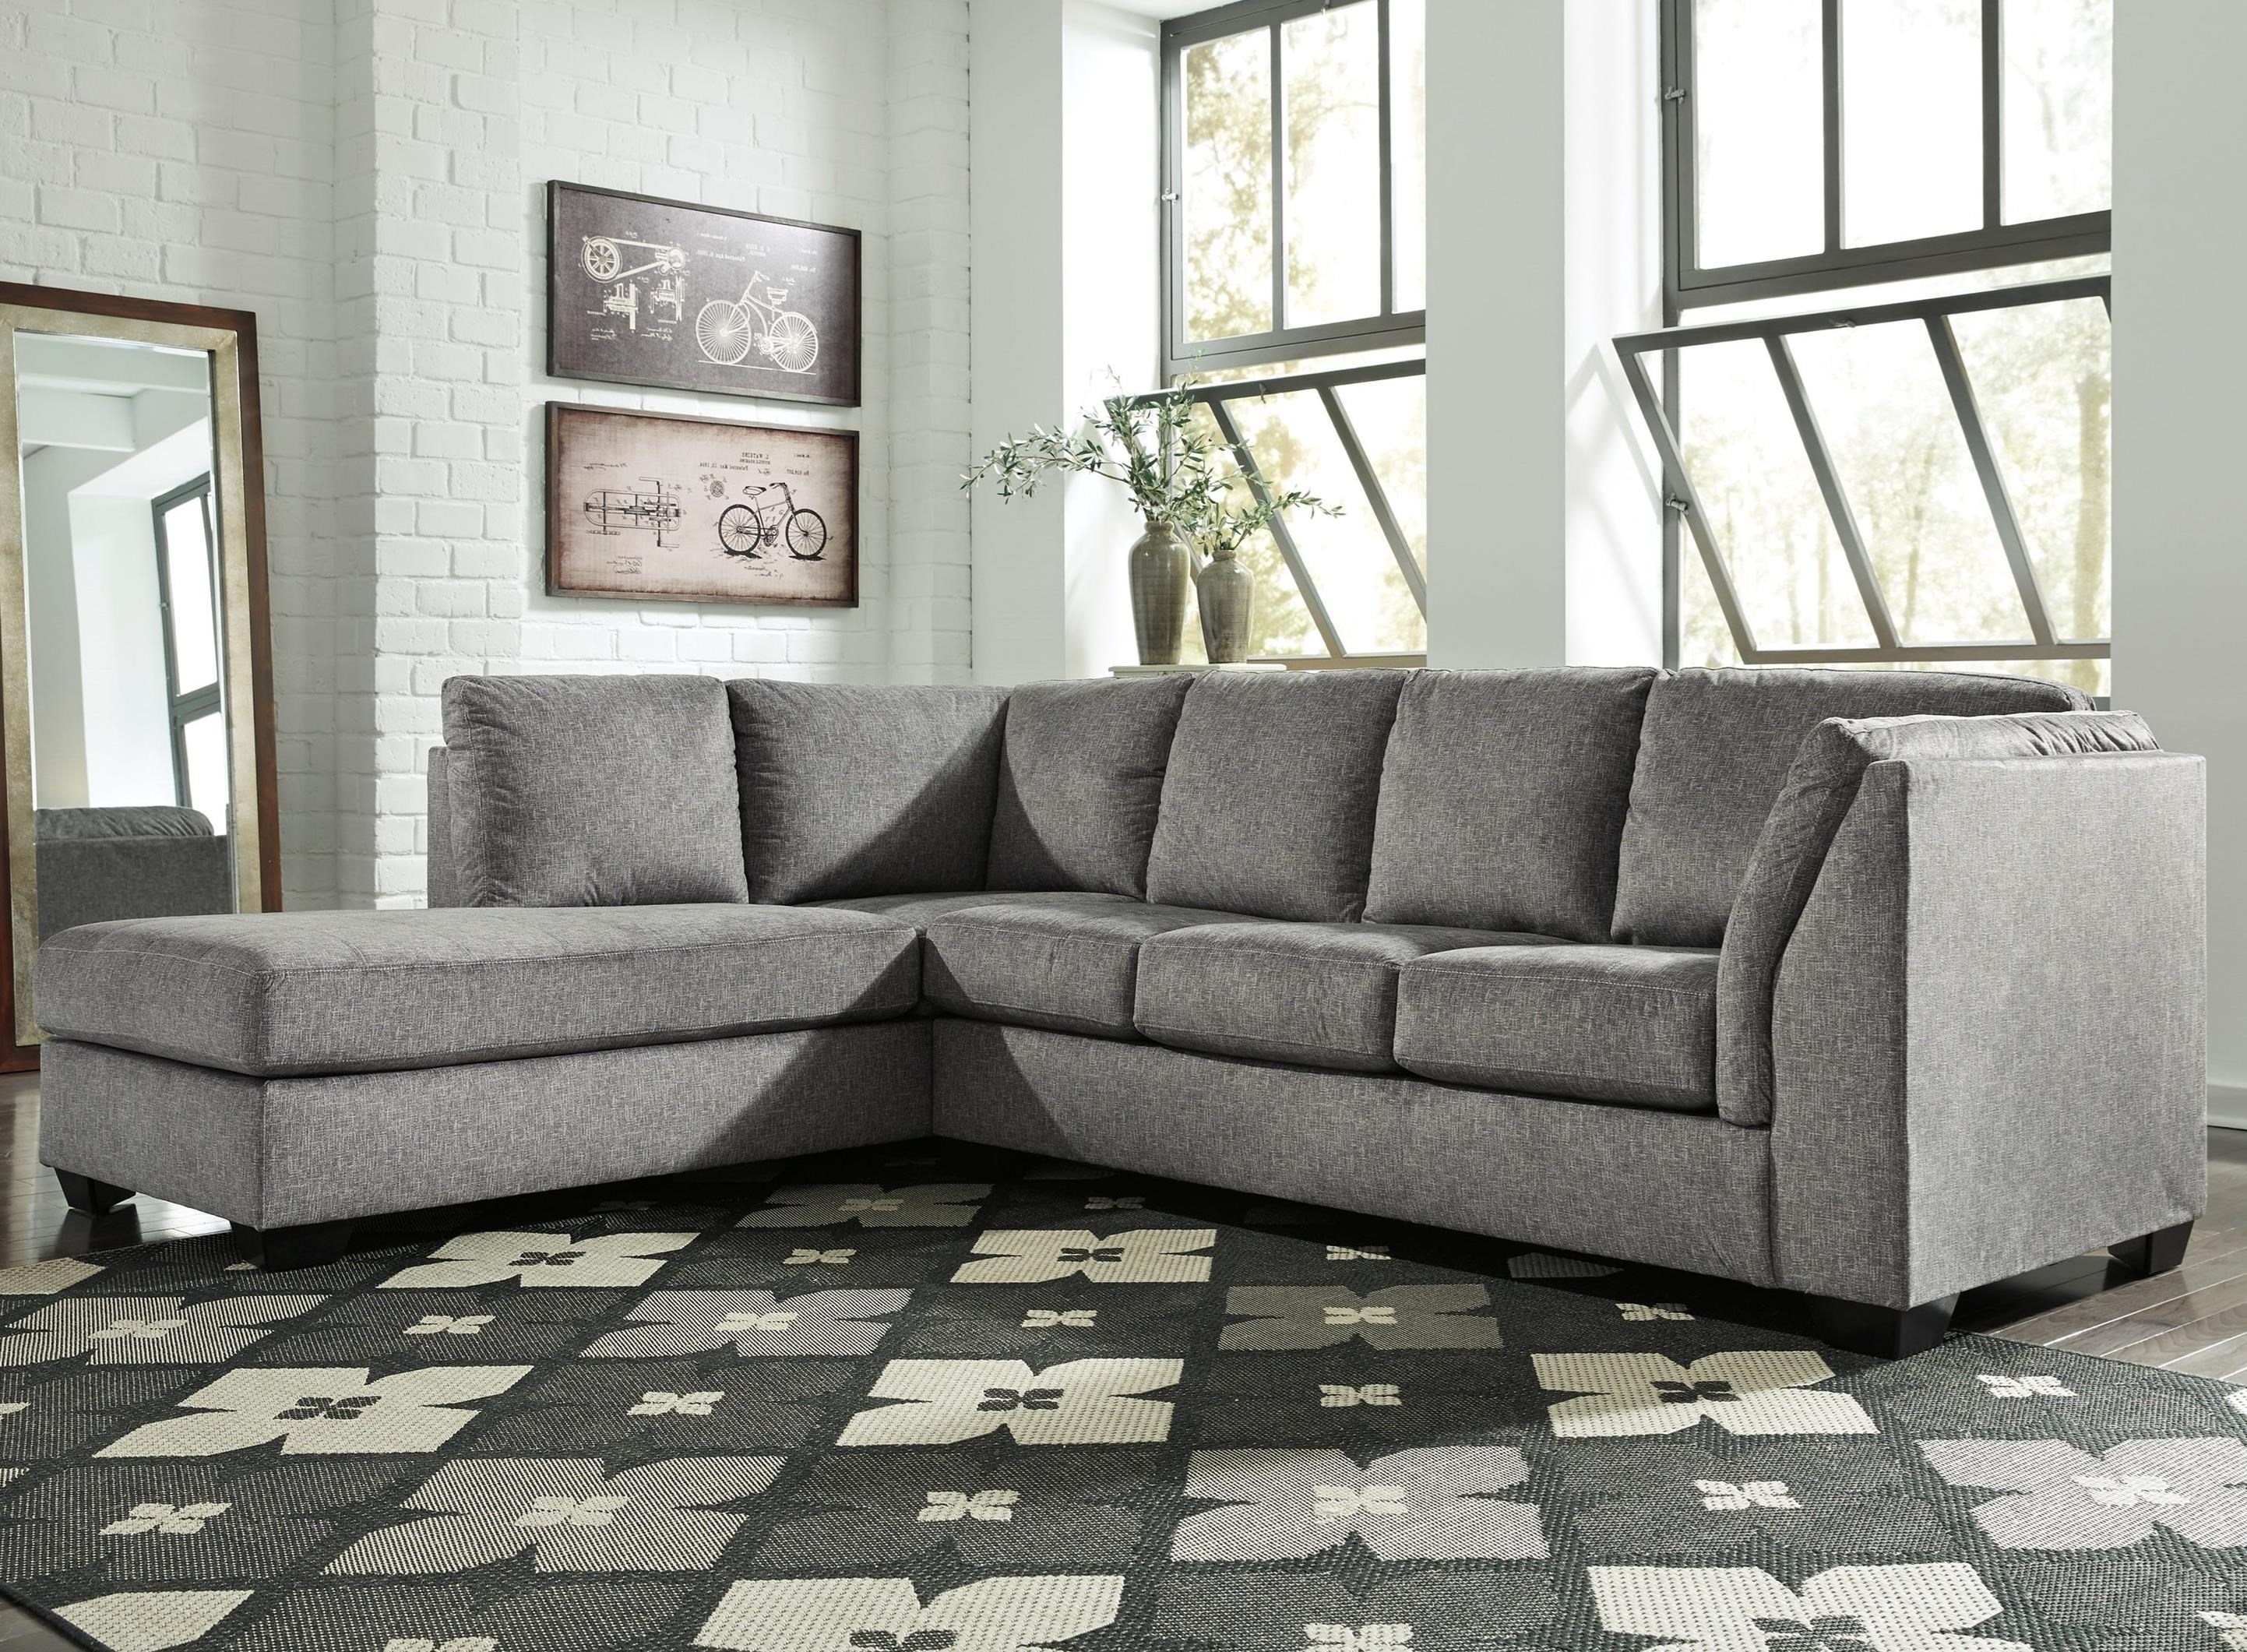 Belcastel 2 Piece Sectional With Left Chaise In Gray Fabric   Becker In Blaine 4 Piece Sectionals (Image 2 of 25)